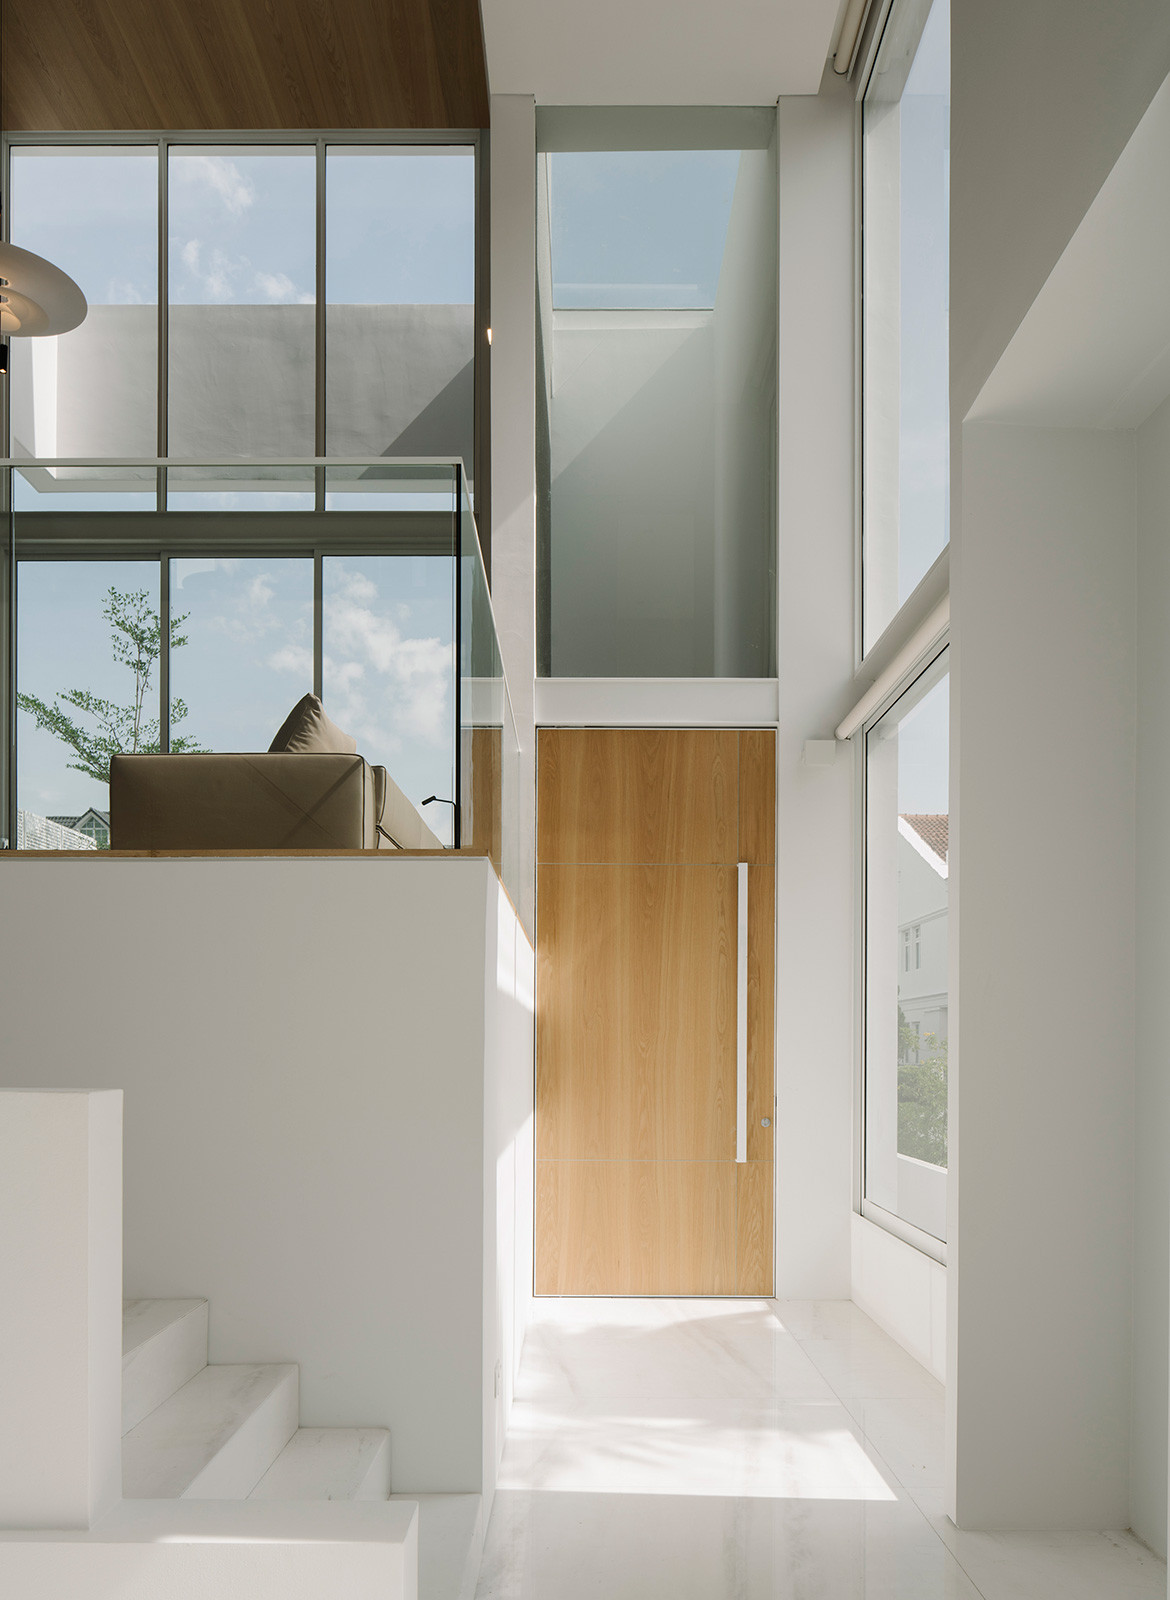 Assembled House Park + Associates Semi Detached Housecc Studio Periphery window openings